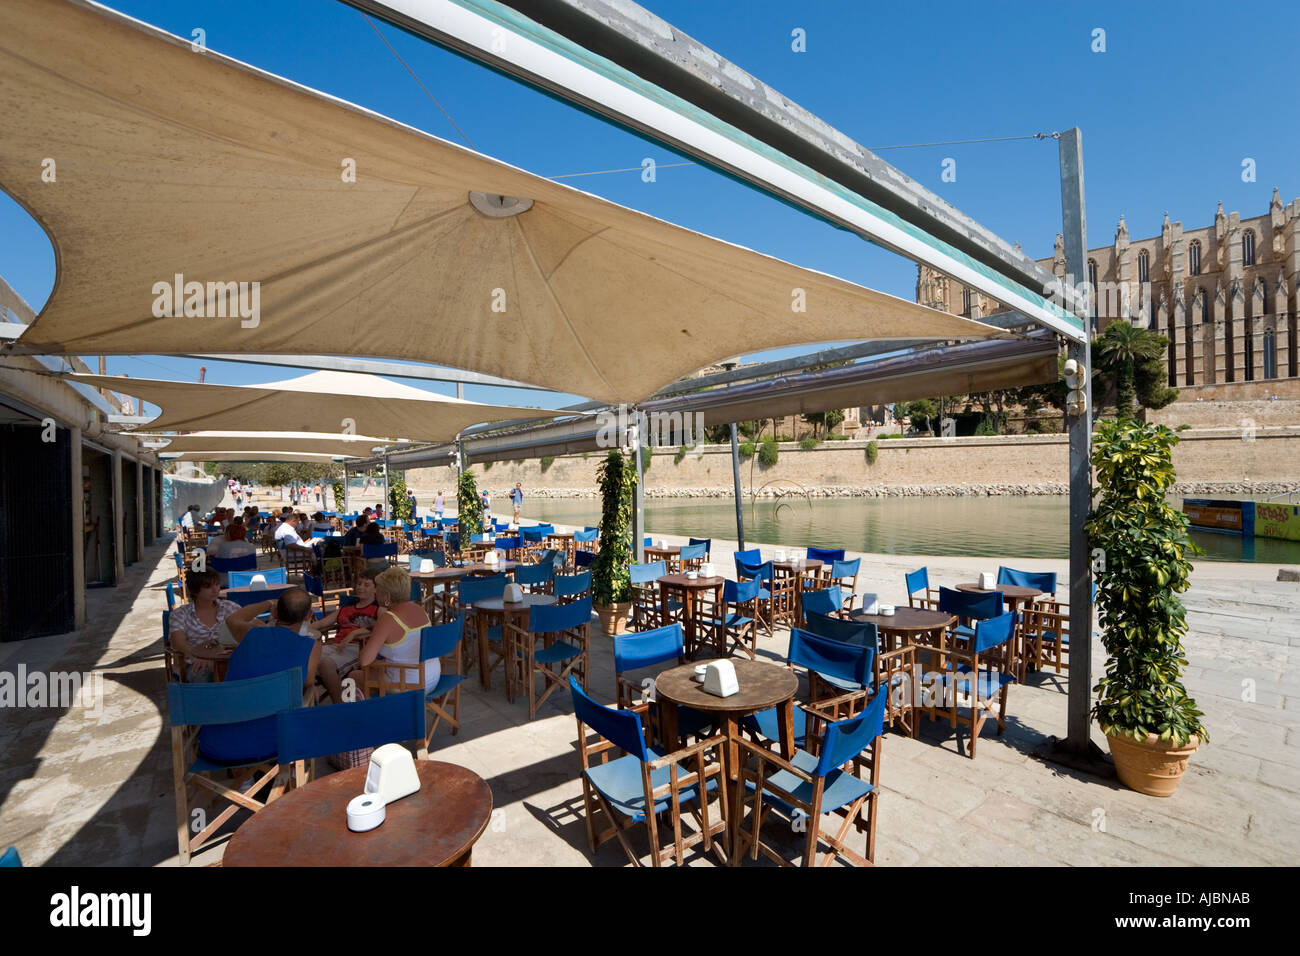 Restaurant opposite the Cathedral on the Parc de la Mar, Historic City Centre, Palma, Mallorca, Spain - Stock Image